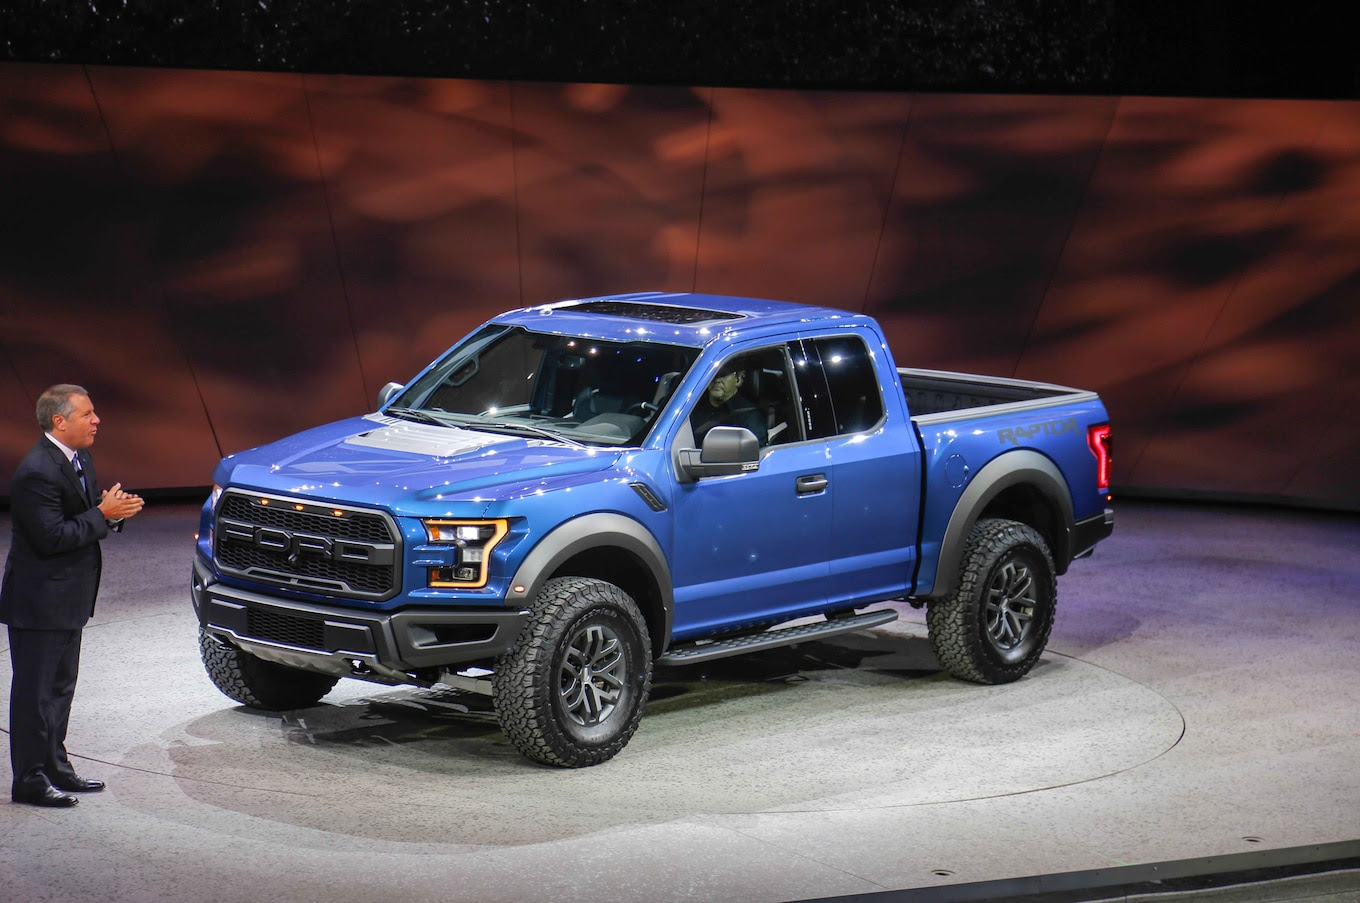 2017 Ford F-150 Raptor First Look Photo Gallery - Motor Trend